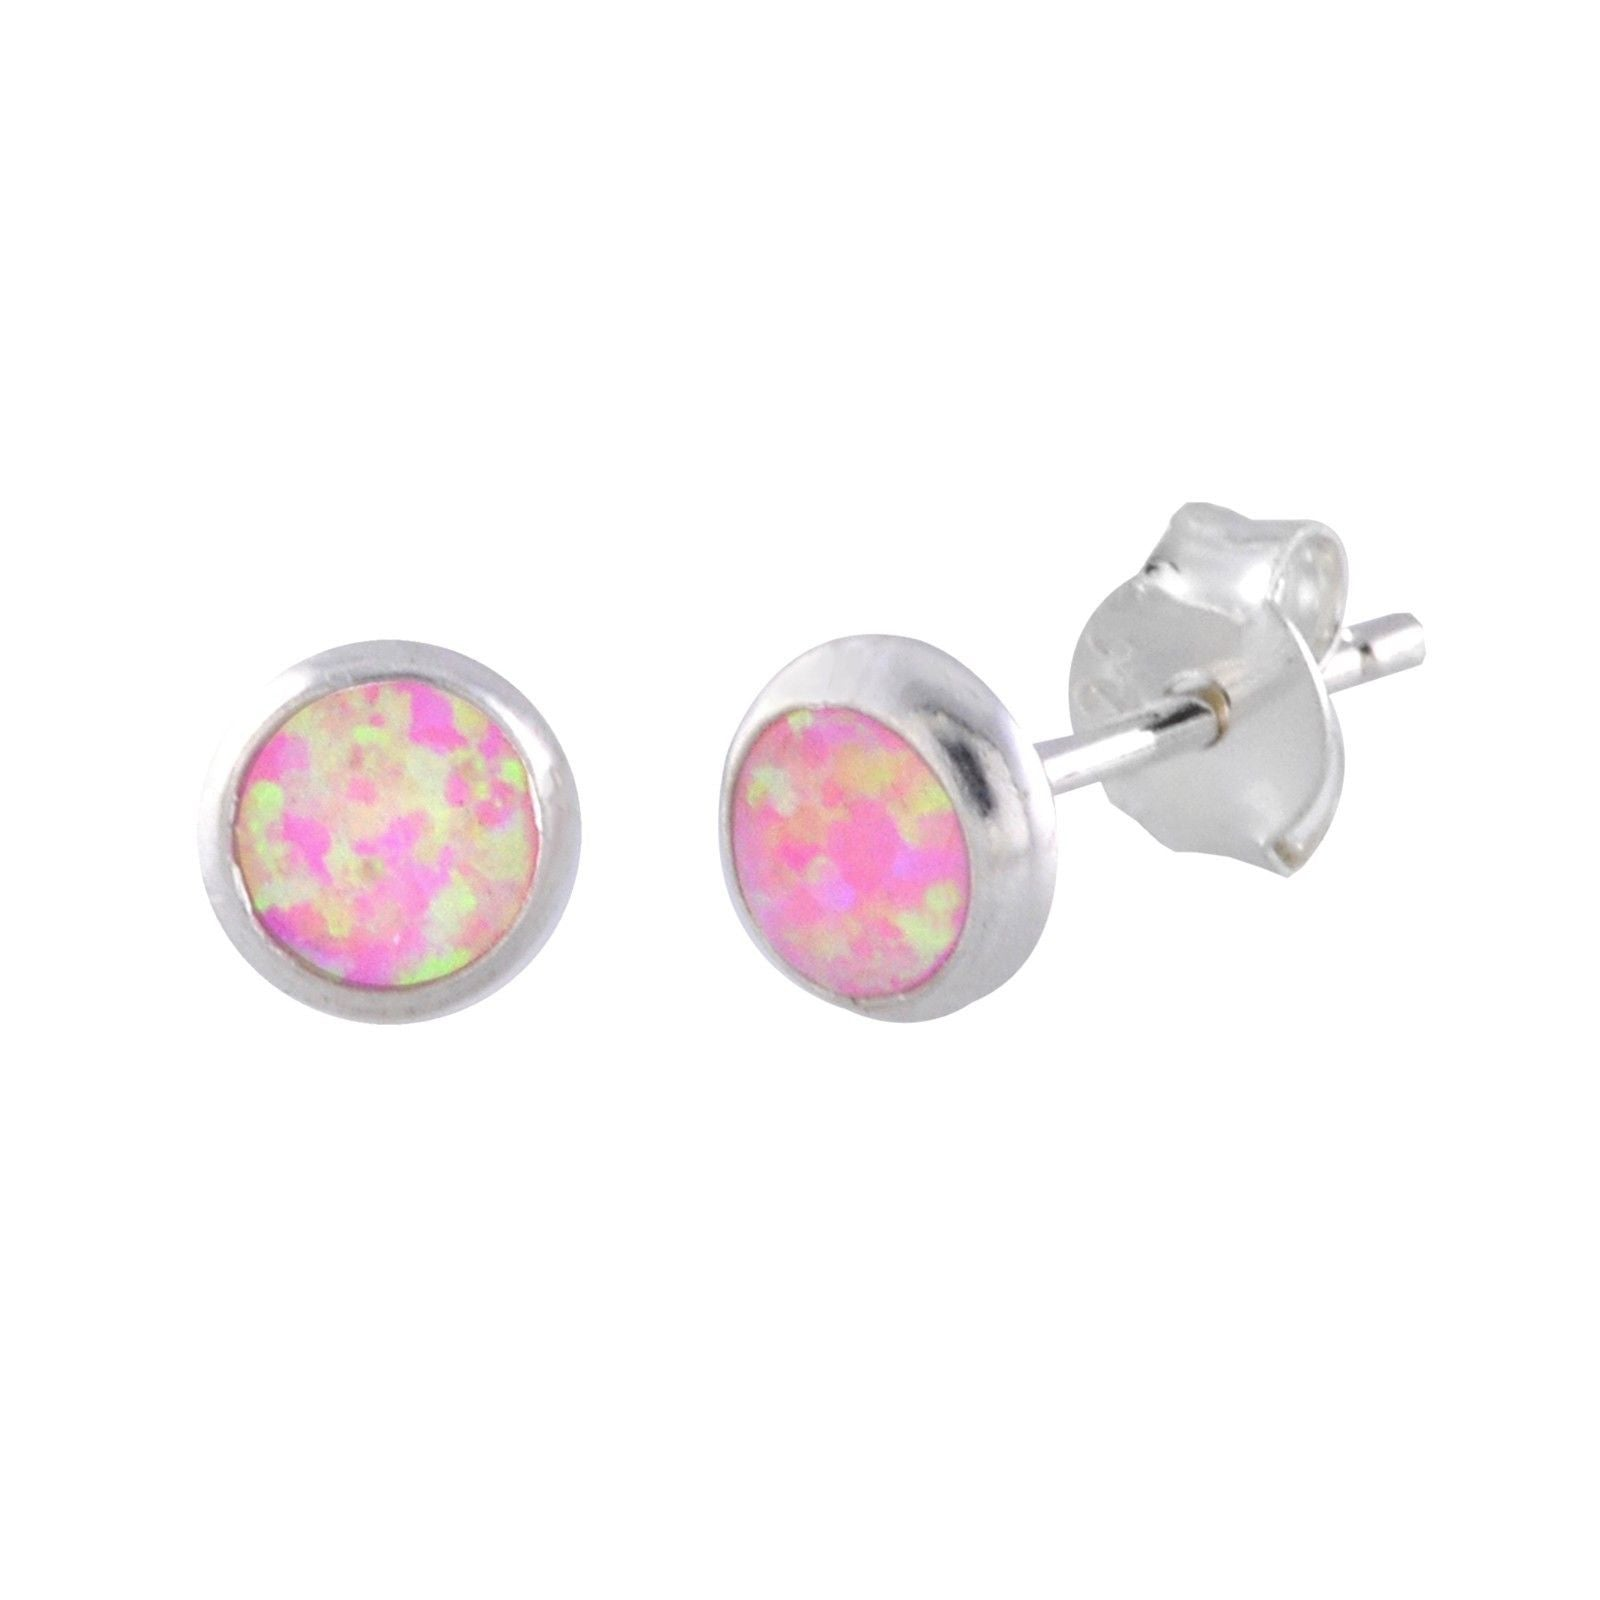 grown round jewelers opal s sterling product stud lab faviore earrings friedman